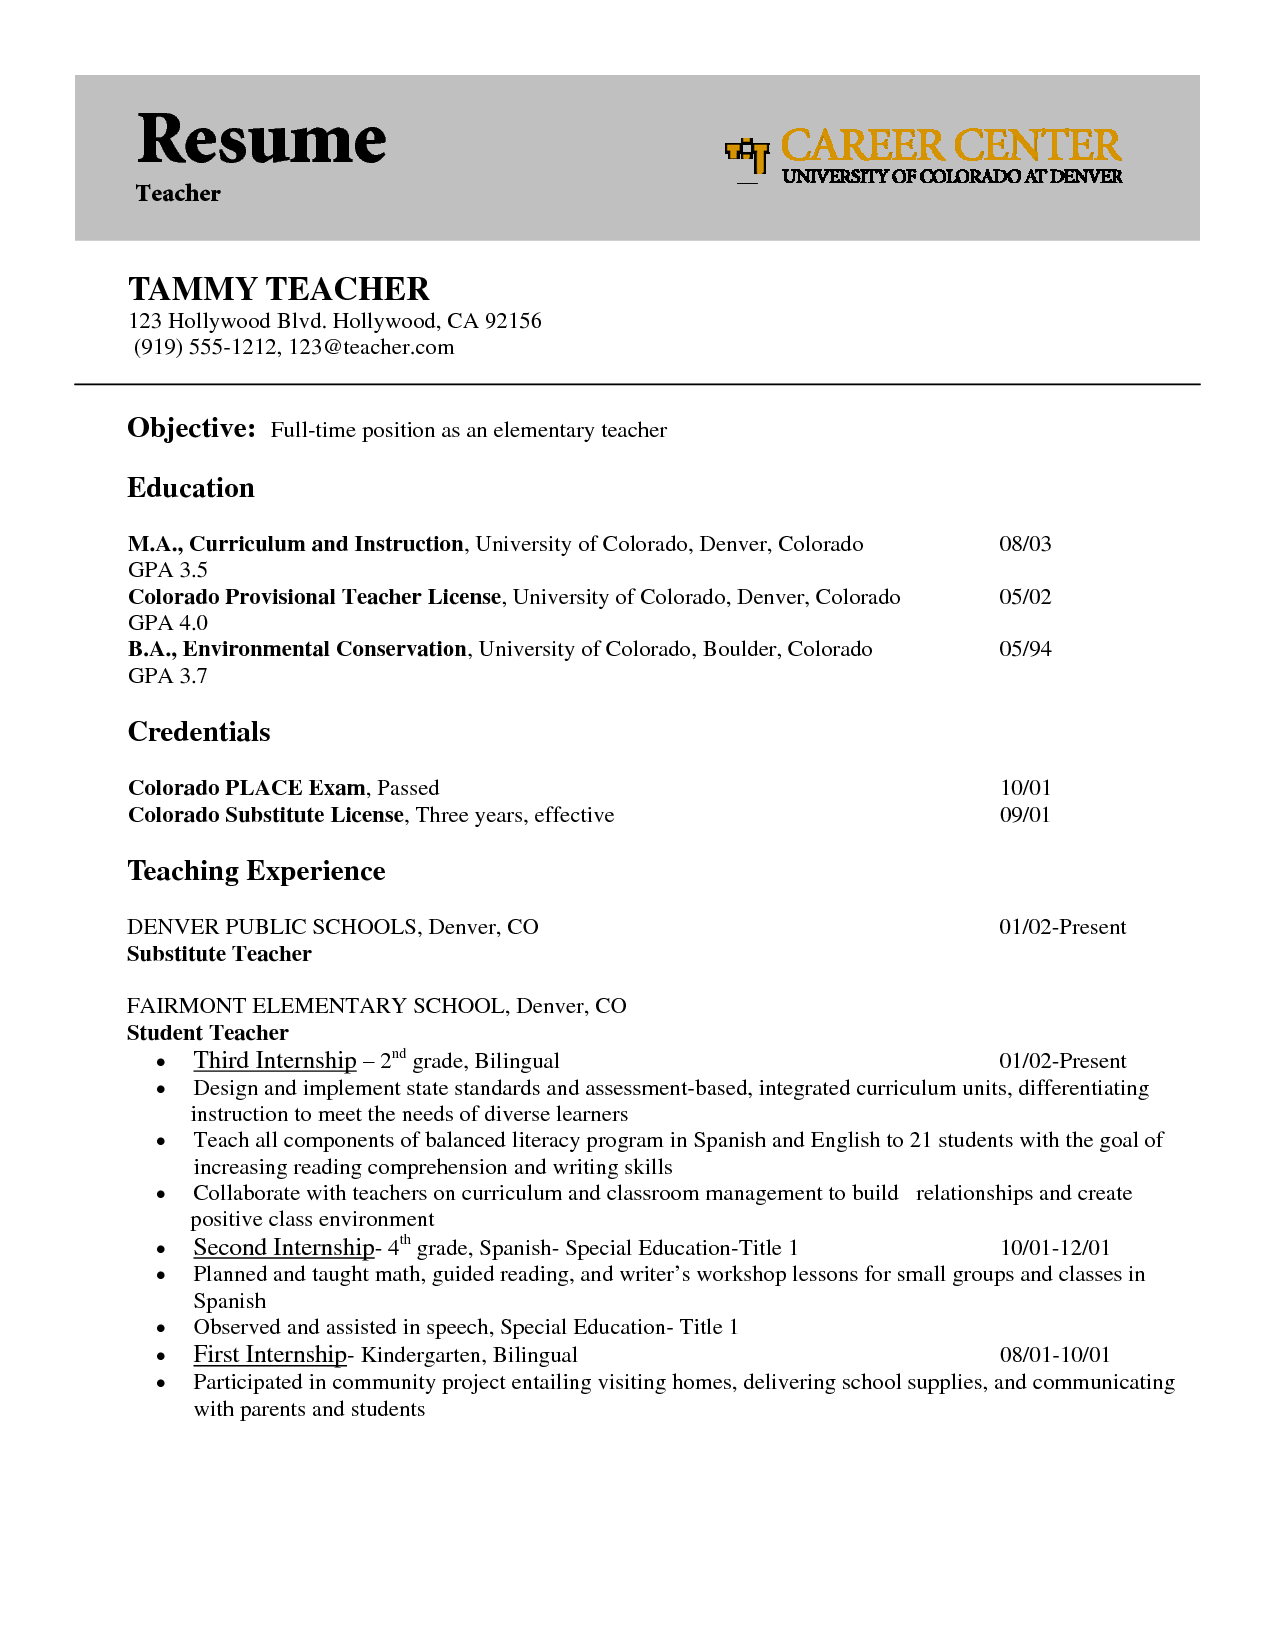 Examples Of Teacher Resumes Teacher Cover Letters With Experiencejob Hunting Write A Great